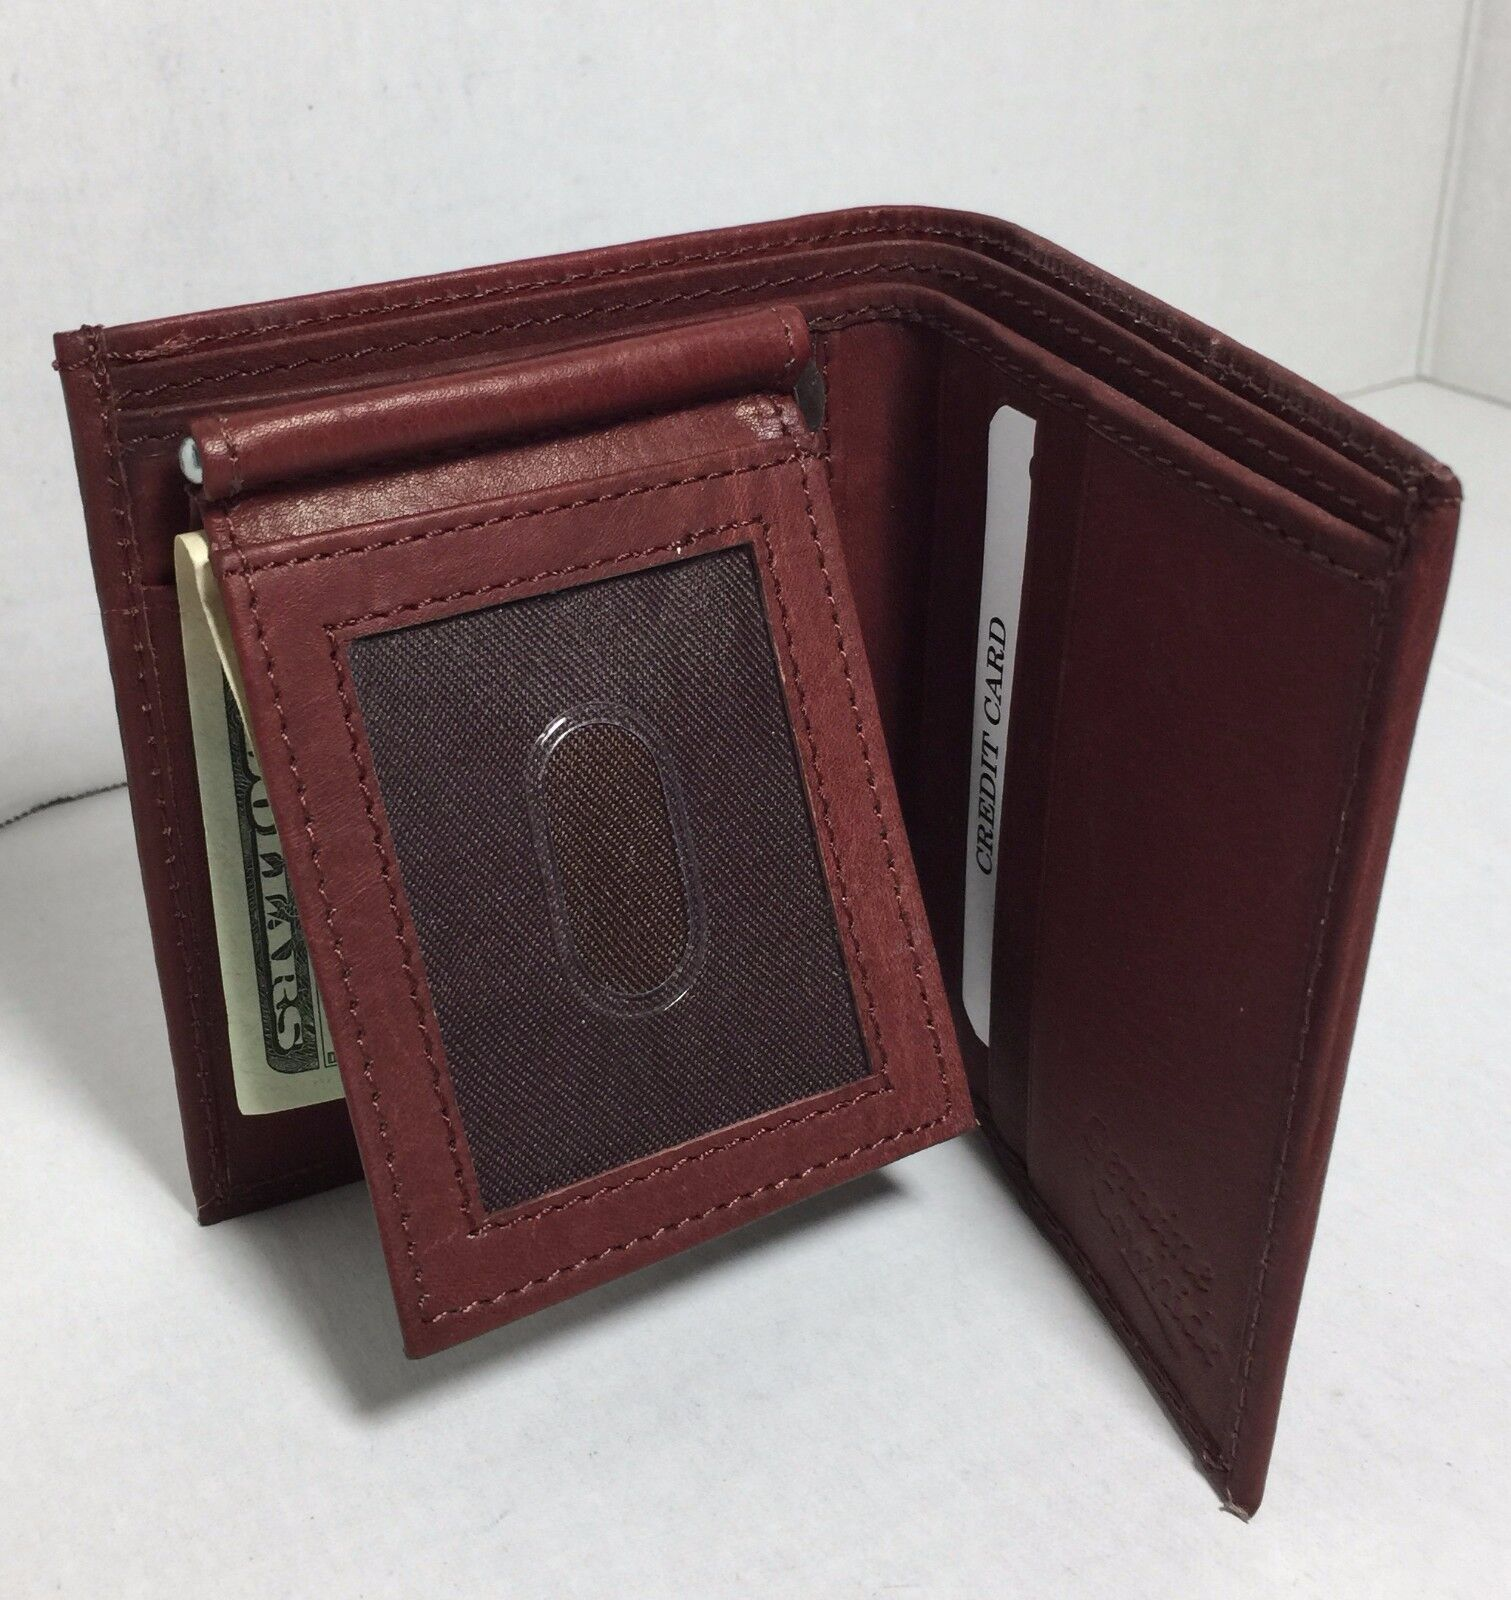 BRAND NEW MEN BROWN FLIP FOLD WALLET COWHIDE LEATHER WITH MO